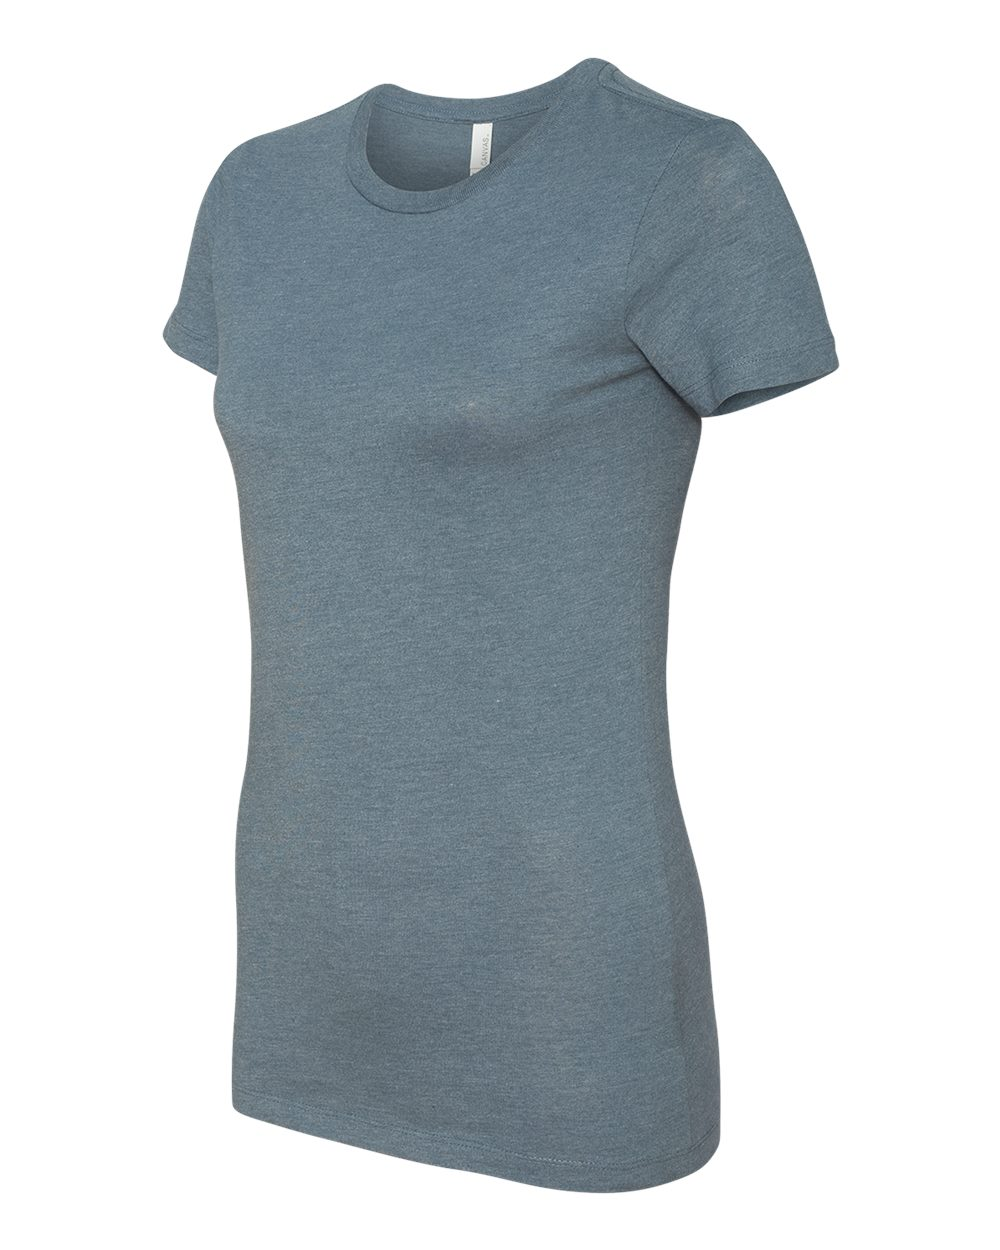 Bella-Canvas-Womens-The-Favorite-T-Shirt-6004-Size-S-2XL thumbnail 91